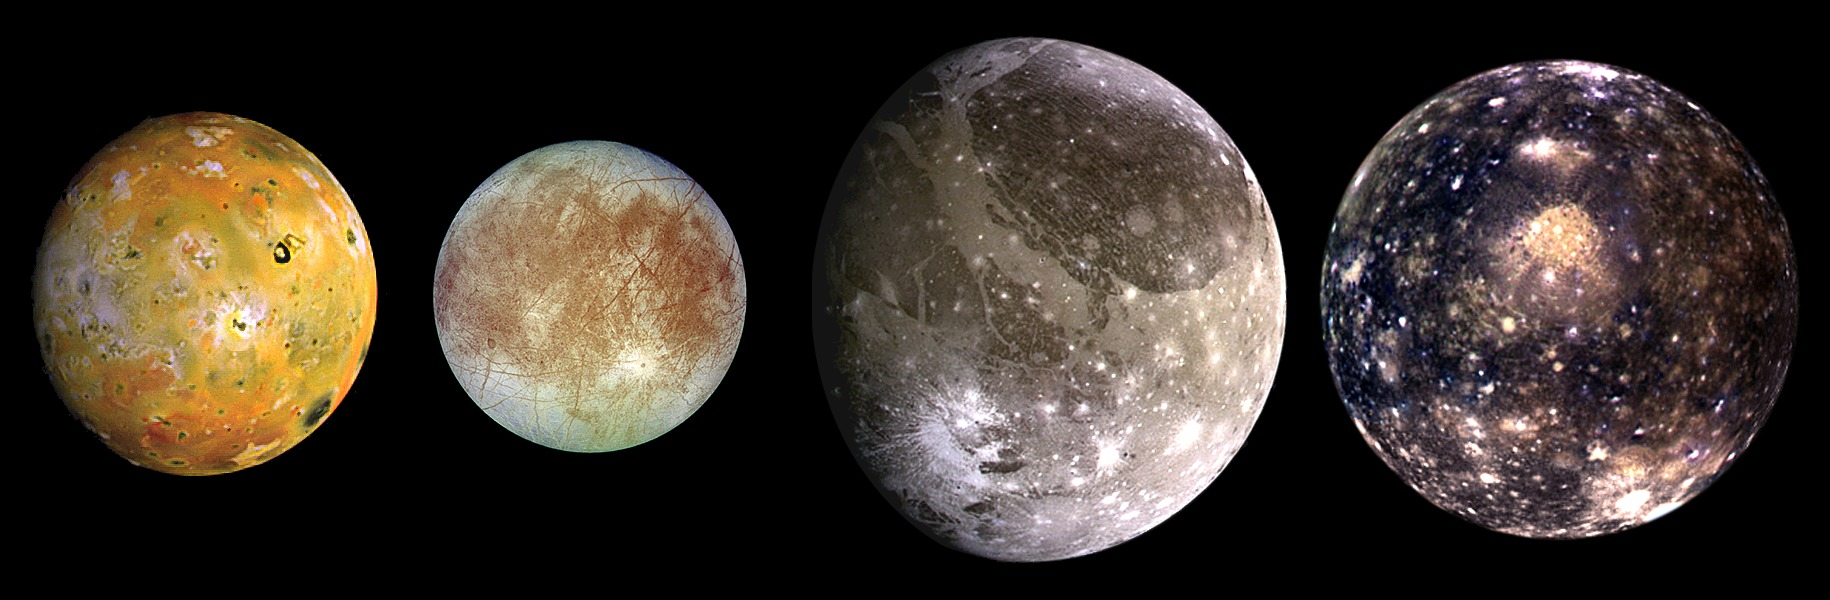 Galilean Satellites. From left to right, in order of increasing distance from Jupiter: Io, Europa, Ganymede, Callisto (credit:- NASA/JPL/DLR)